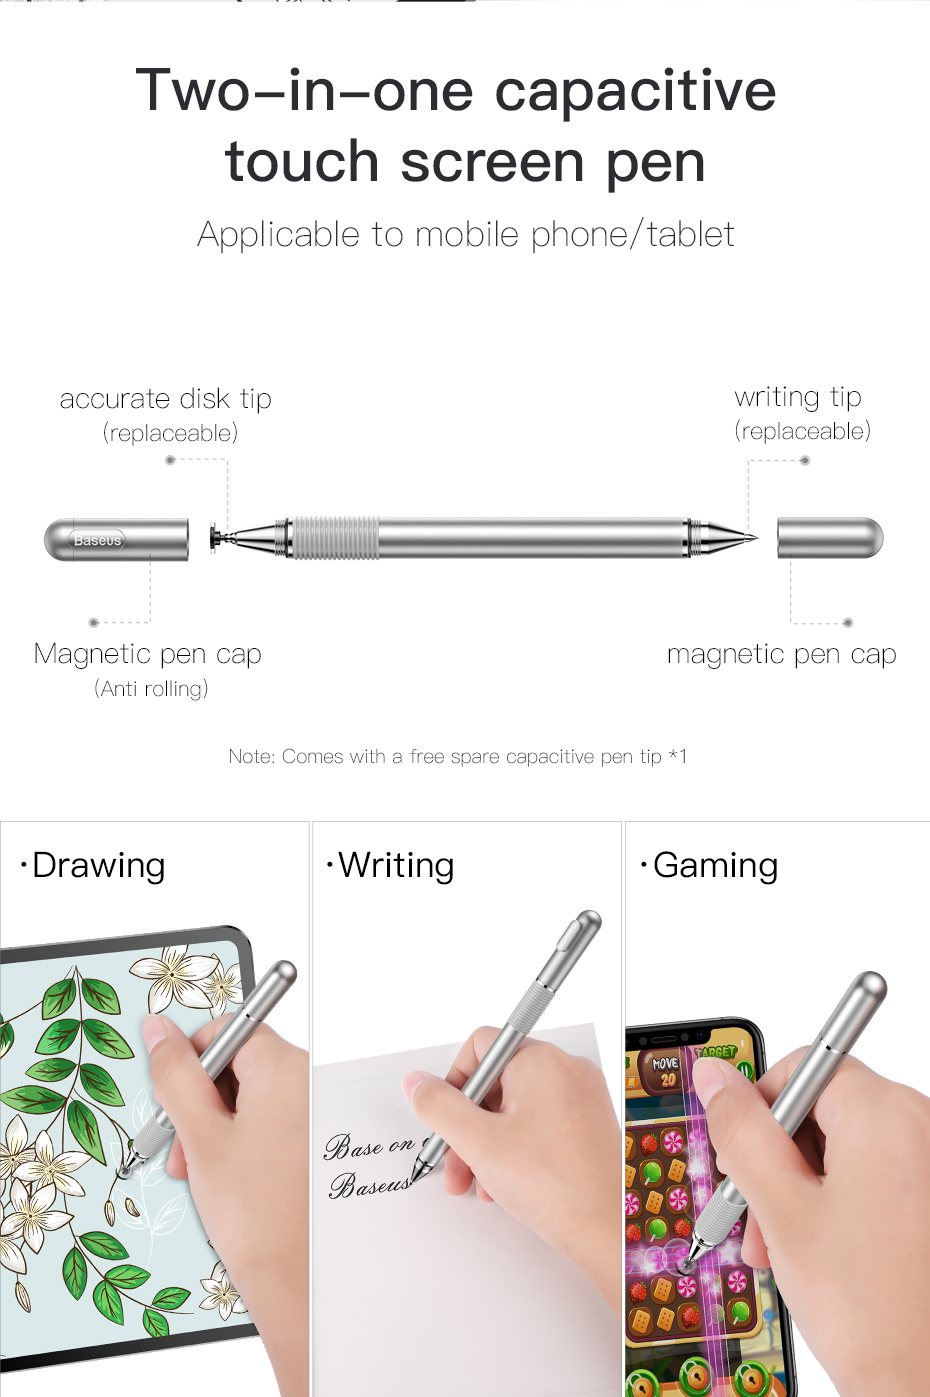 Baseus 2 in 1 Capacitive Touch Screen Stylus Pen For Apple Android Tablets